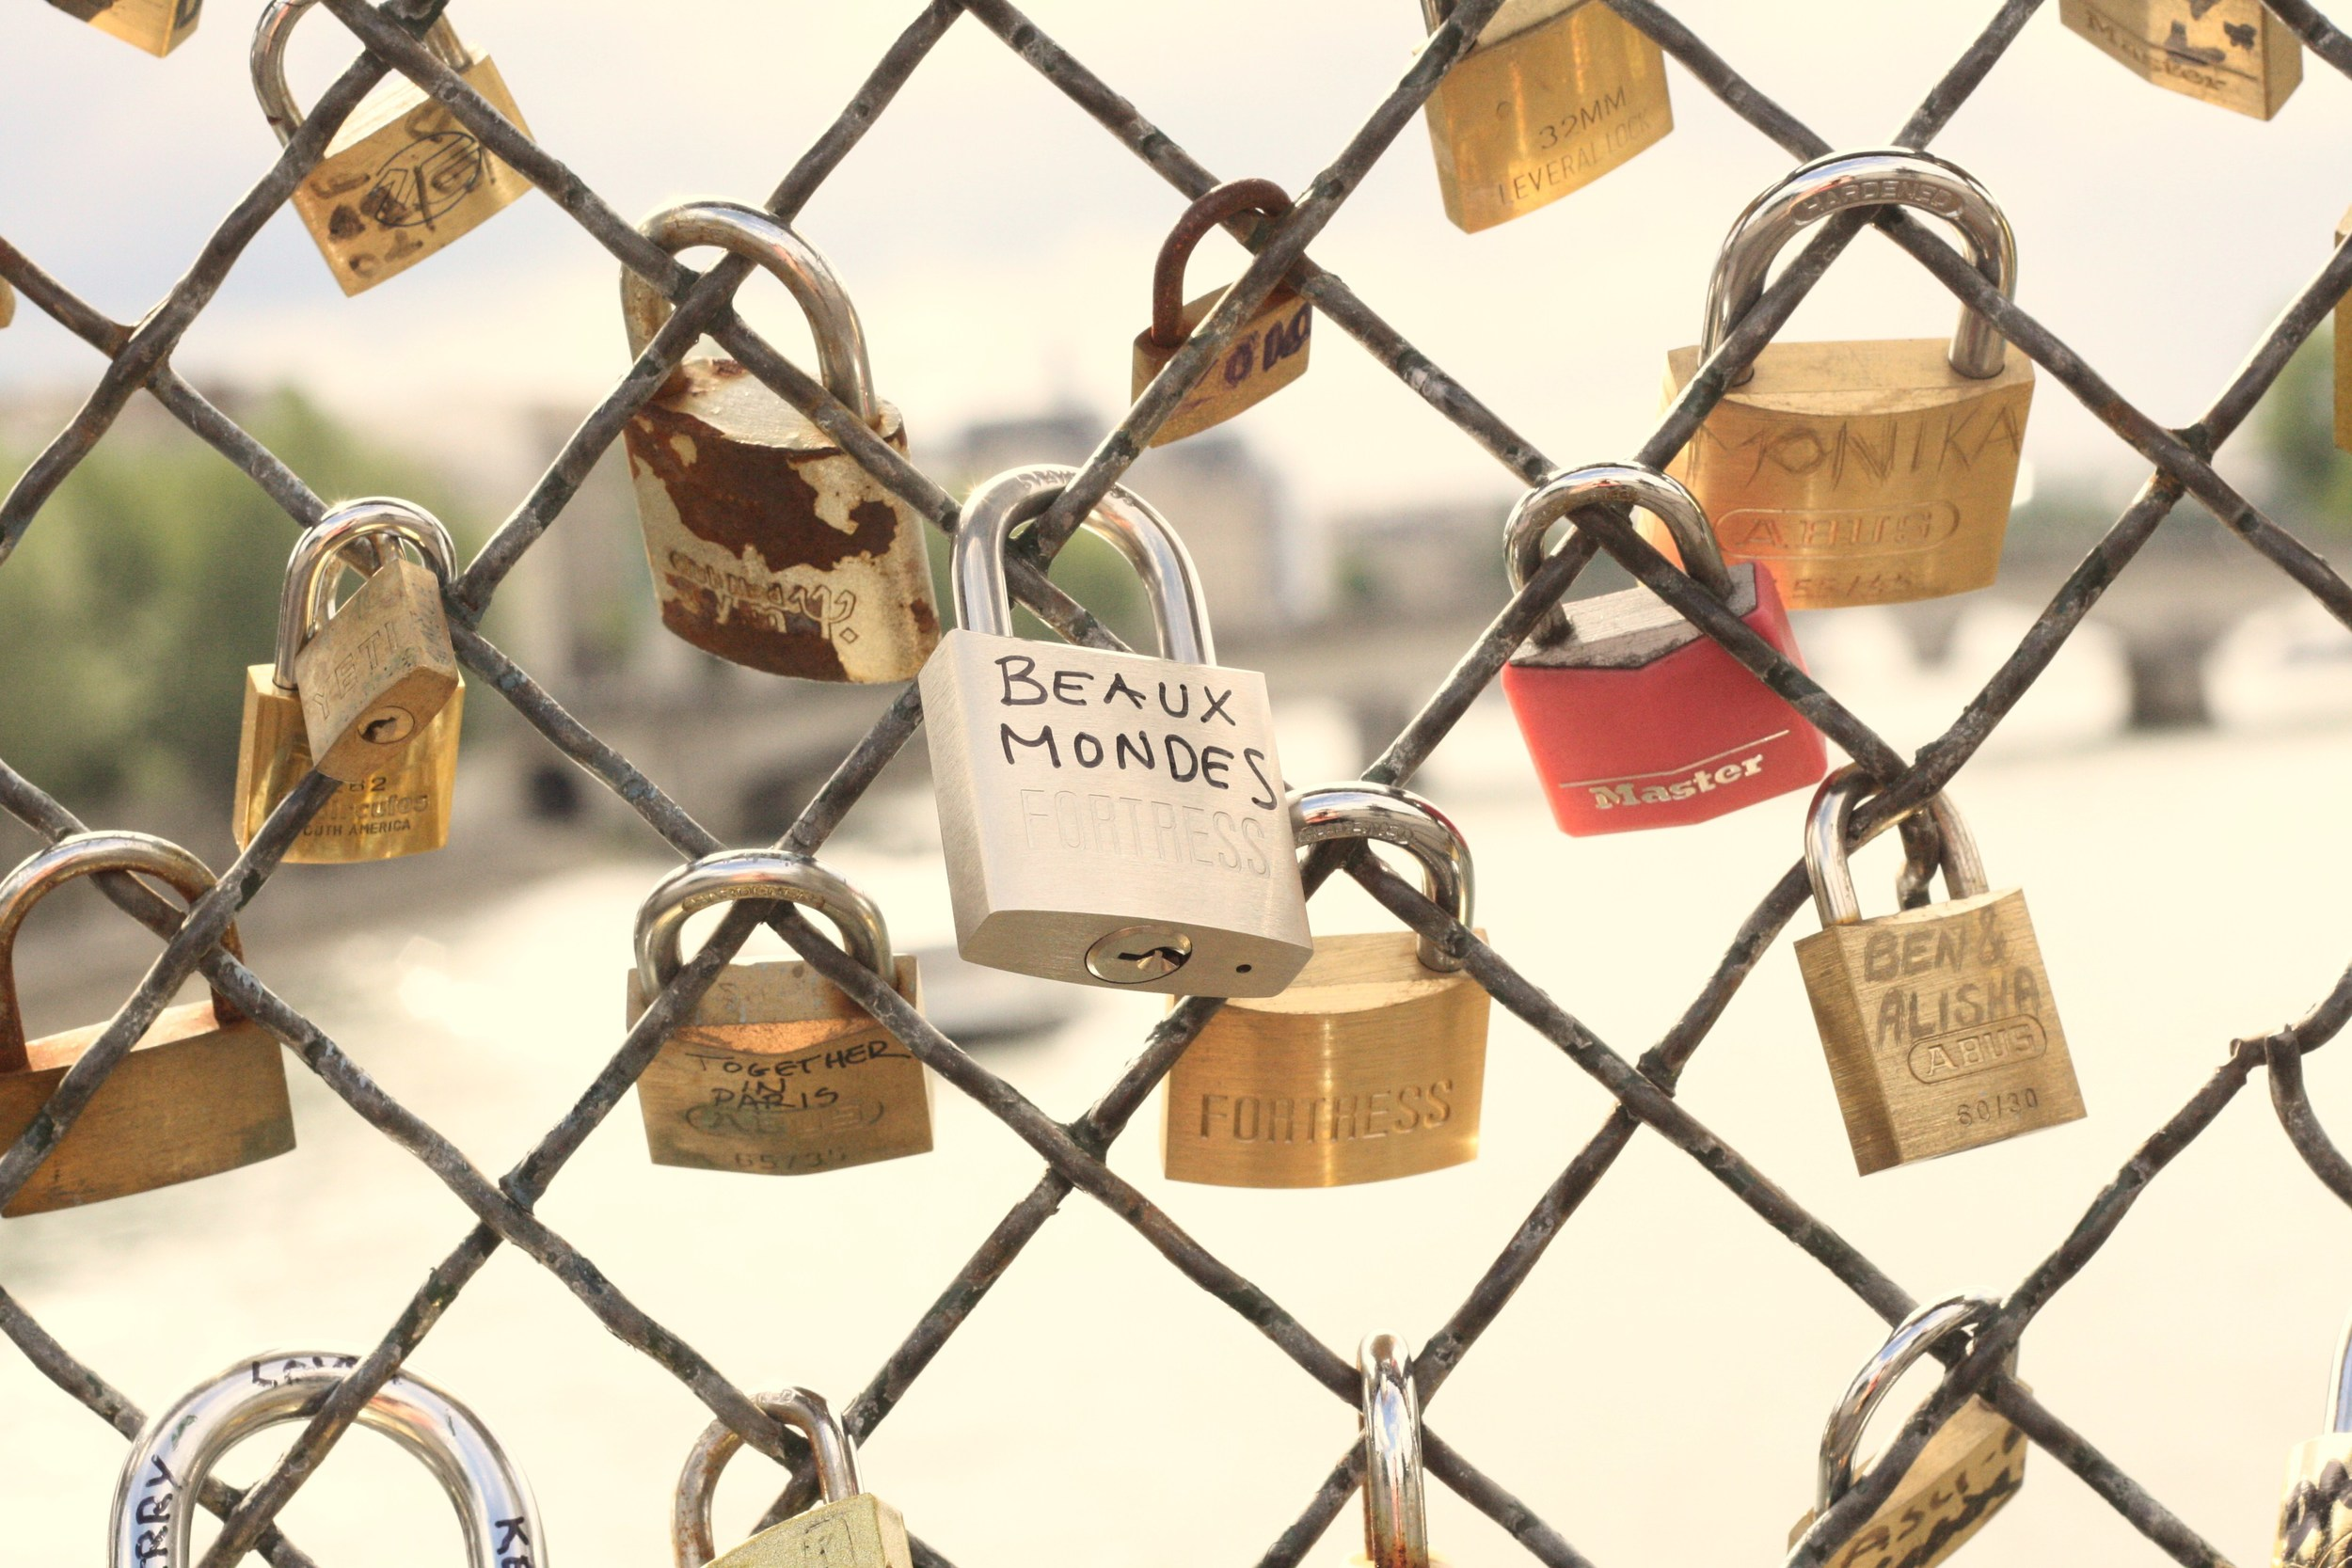 Our love lock, on the 'Lover's Bridge' over the Seine River in Paris